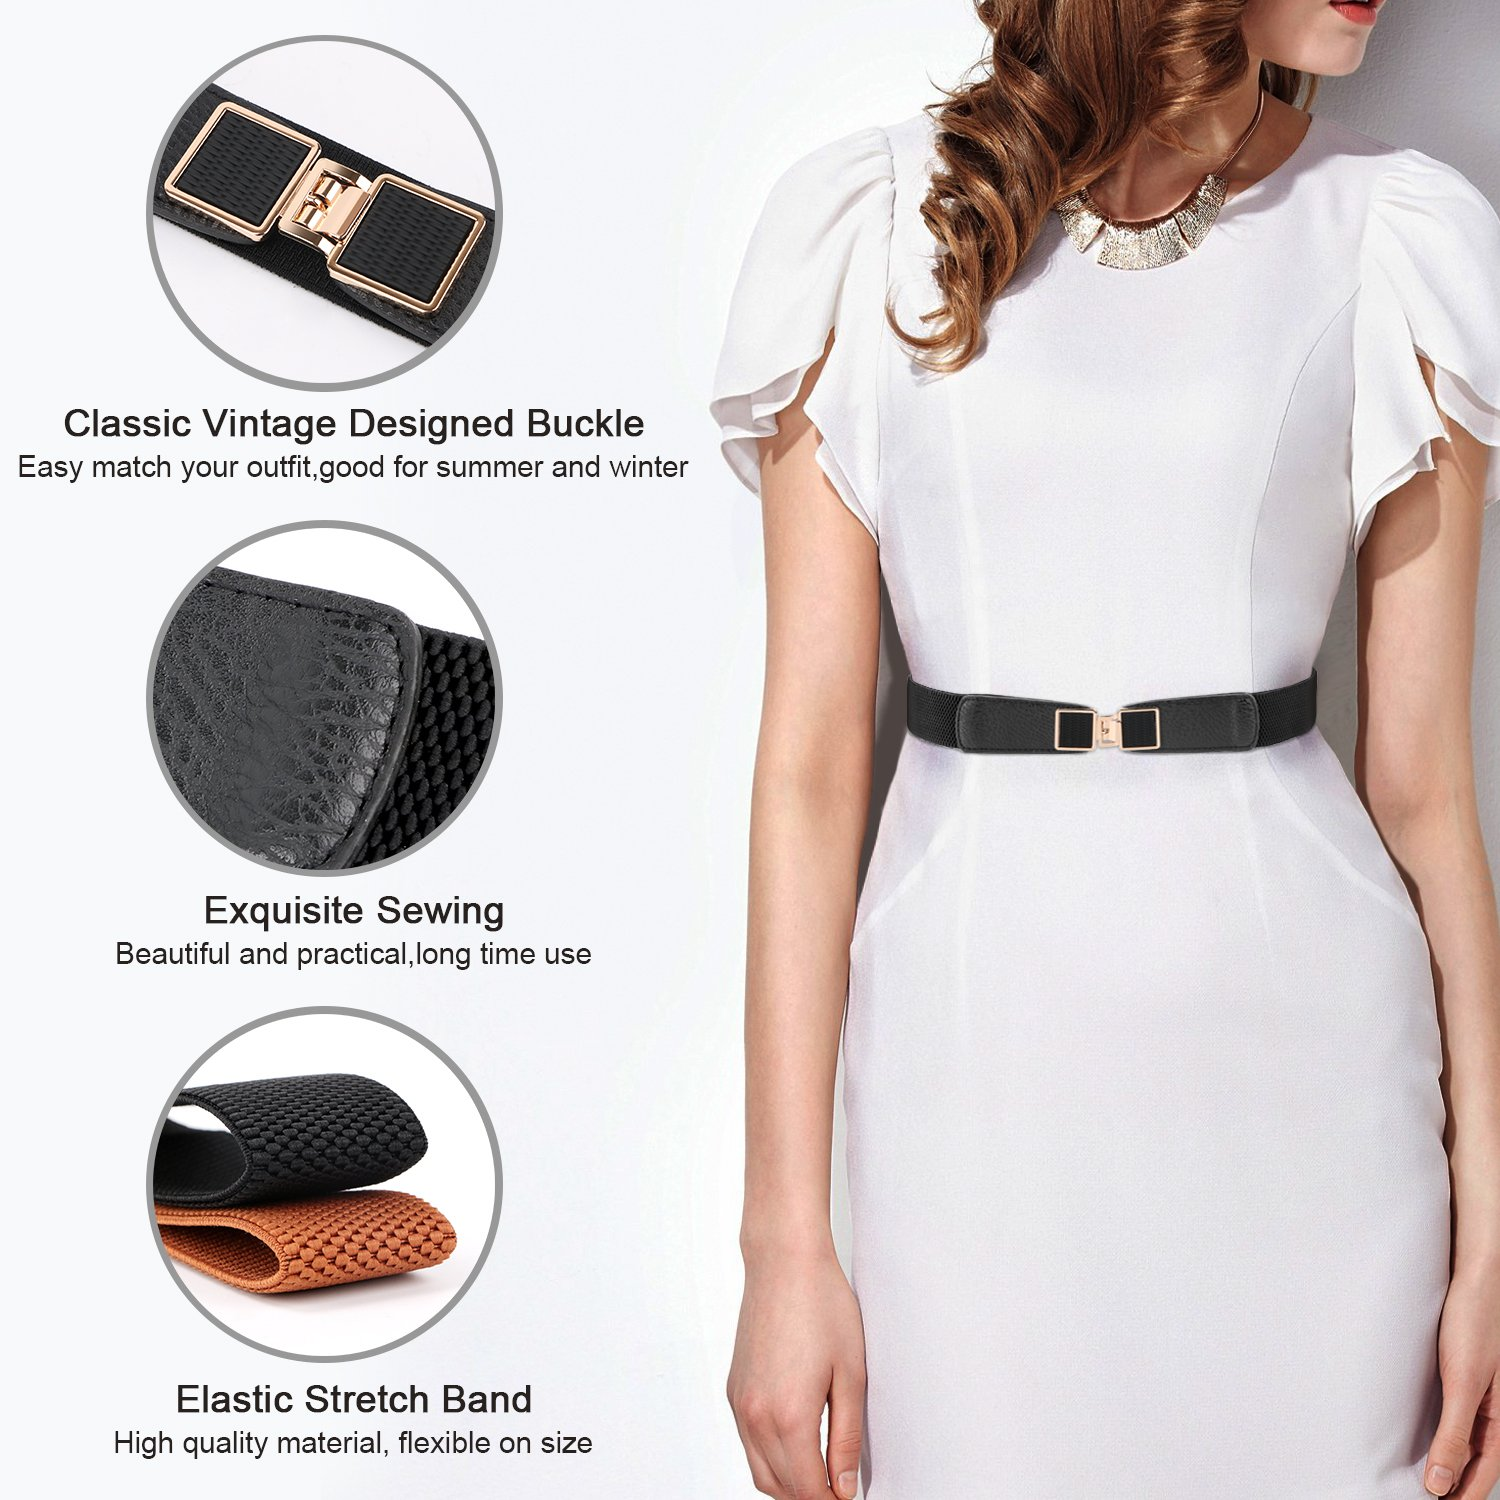 Belt cinch how to wear recommendations dress in summer in 2019